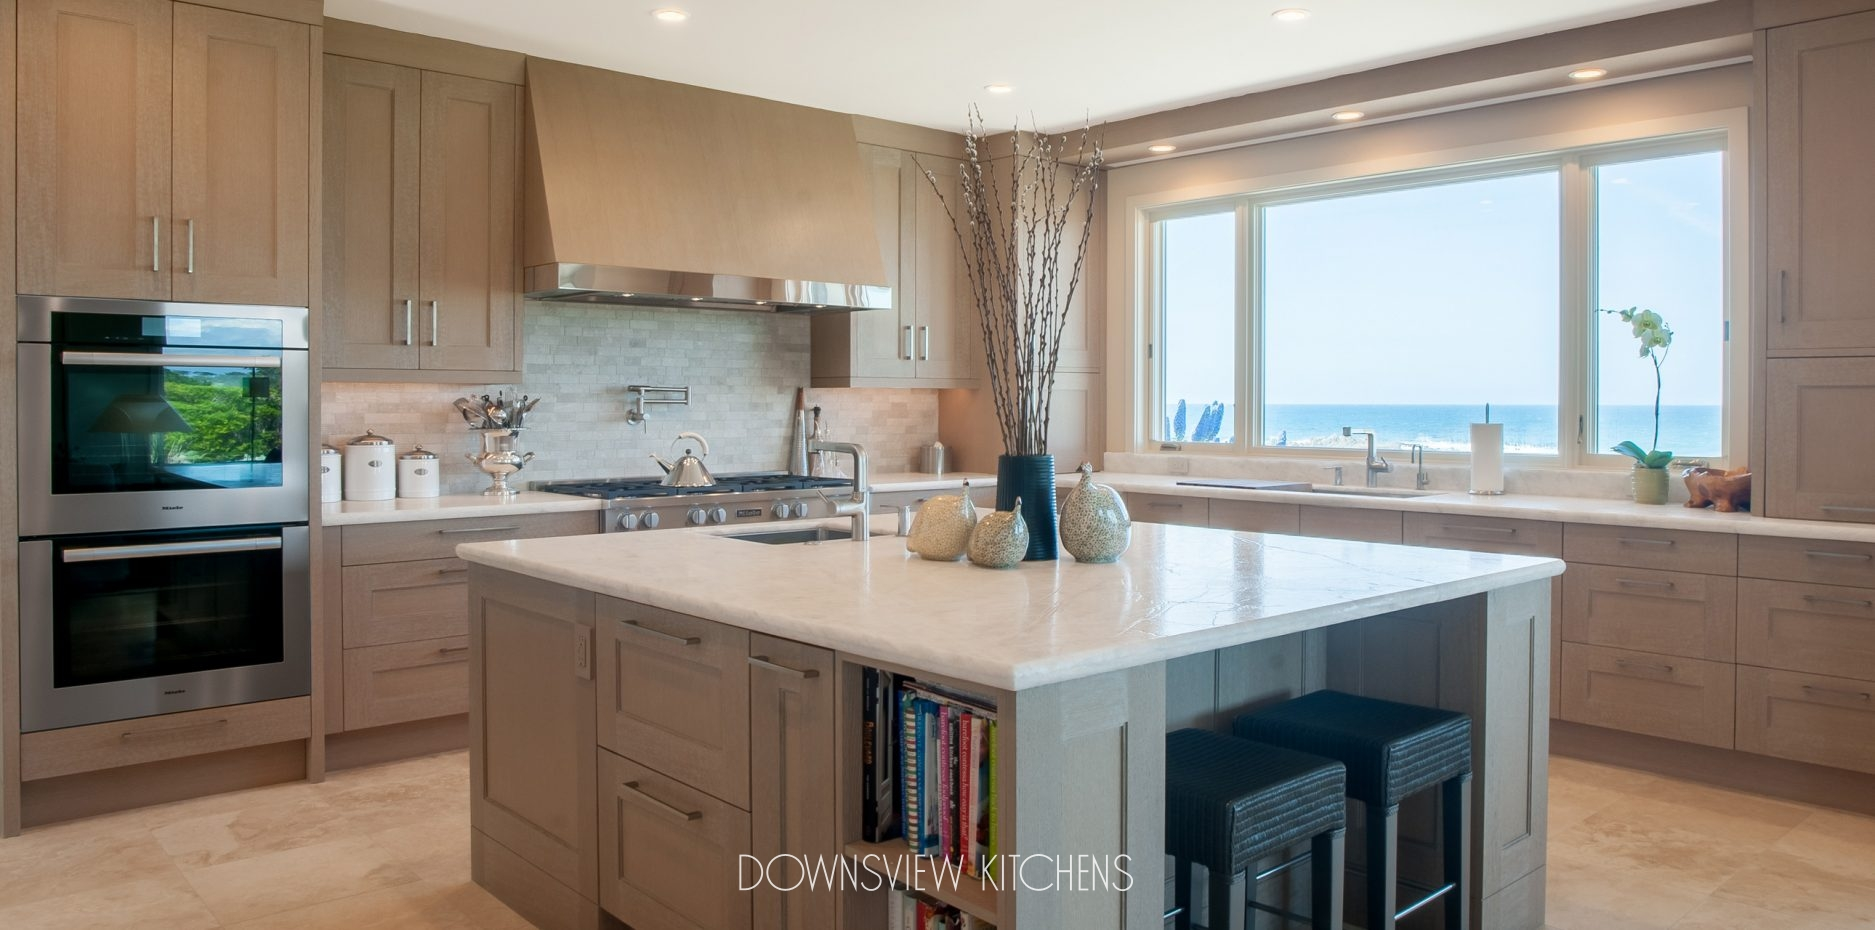 Pebble Beach Setting Downsview Kitchens And Fine Custom Cabinetry Manufacturers Of Custom